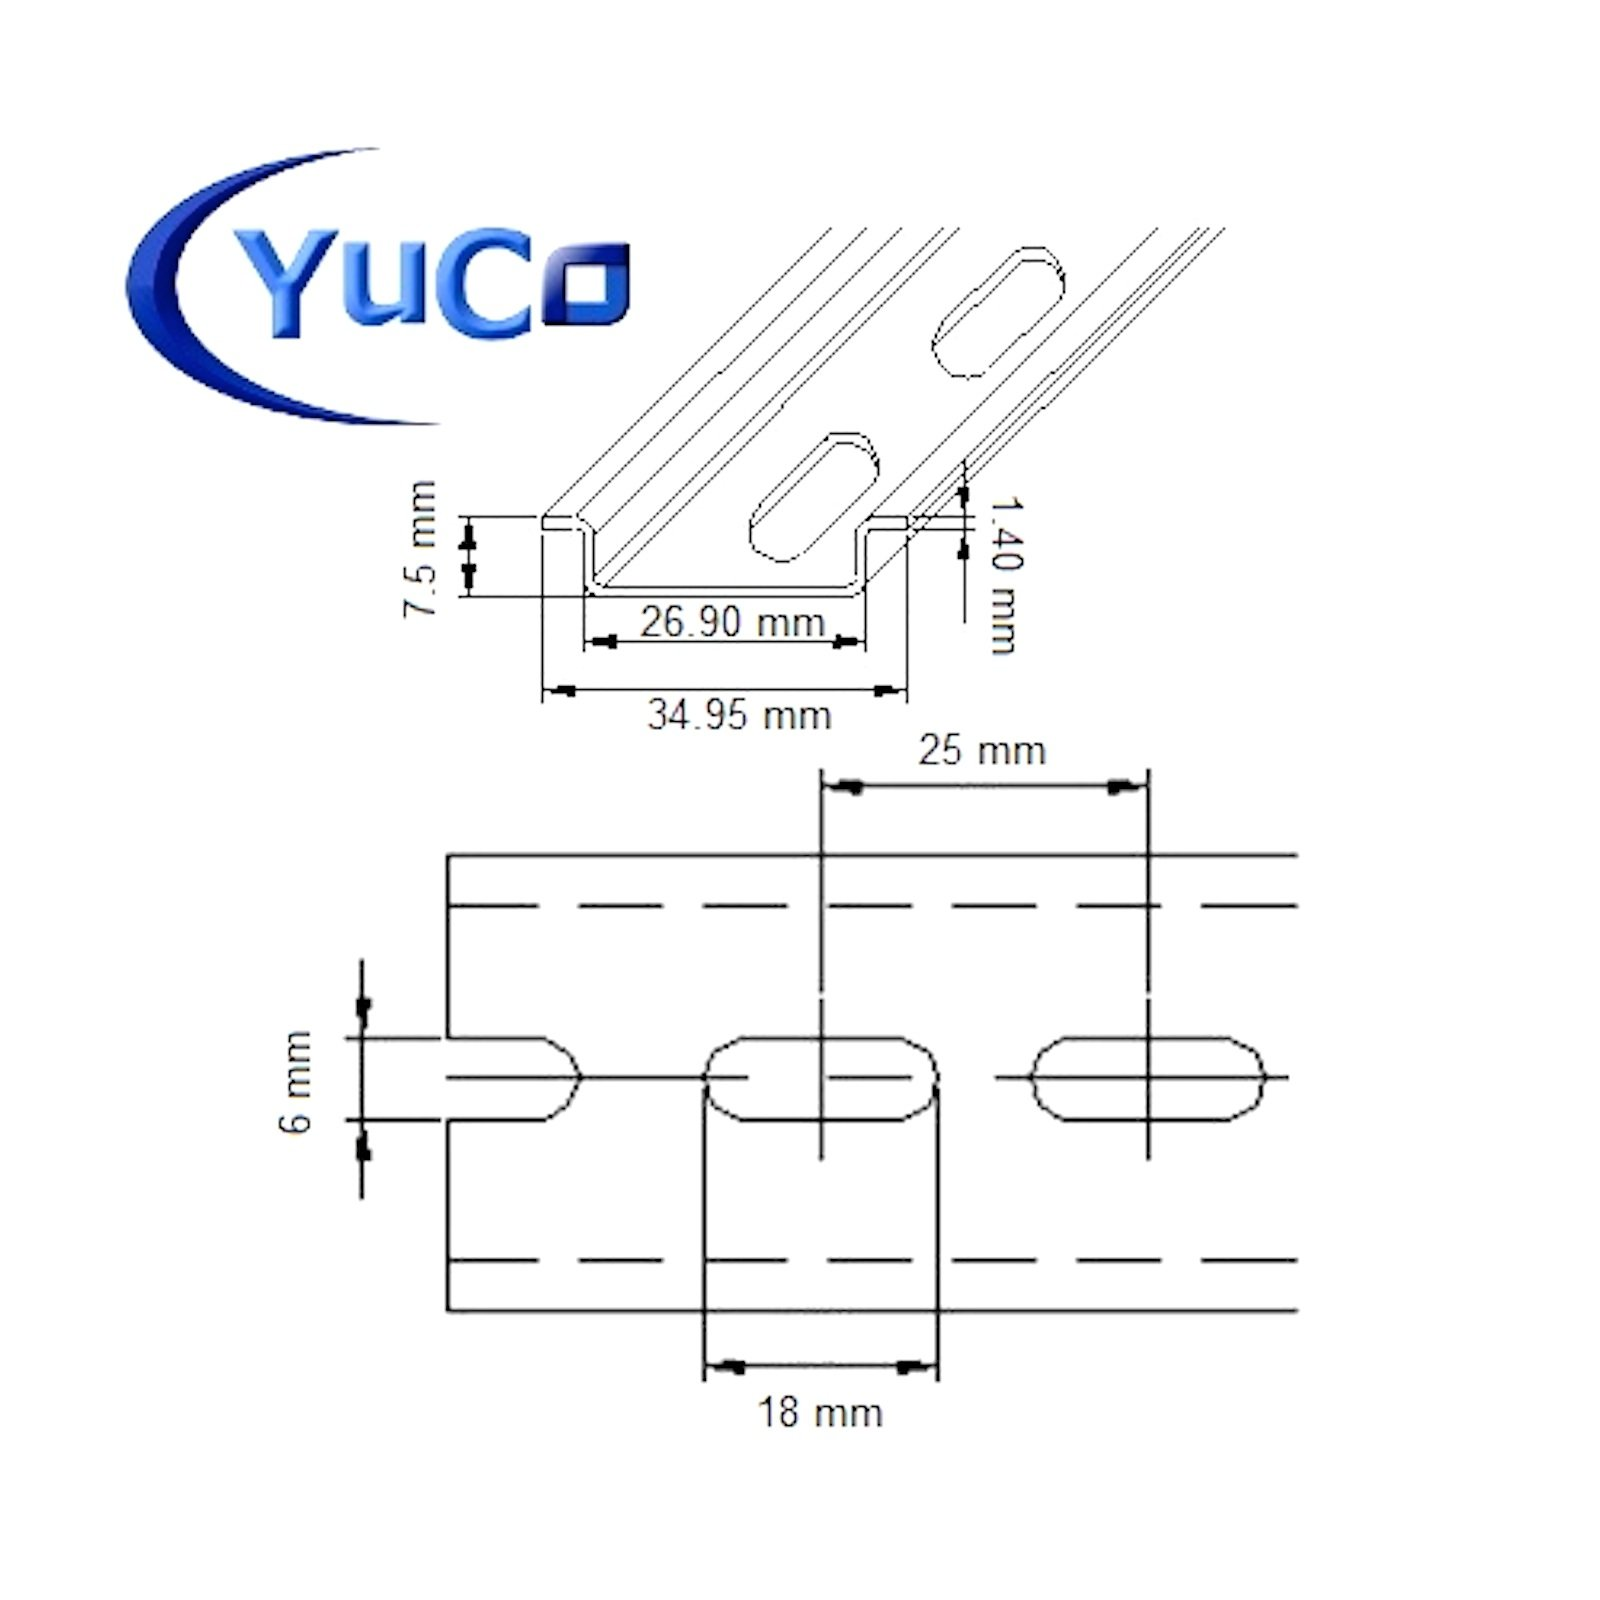 40pcs YC-DR-2m YuCo FACTORY CUT 2m STEEL SLOTTED DIN RAIL 35mm X 7.5mm PR005 ASI RoHS